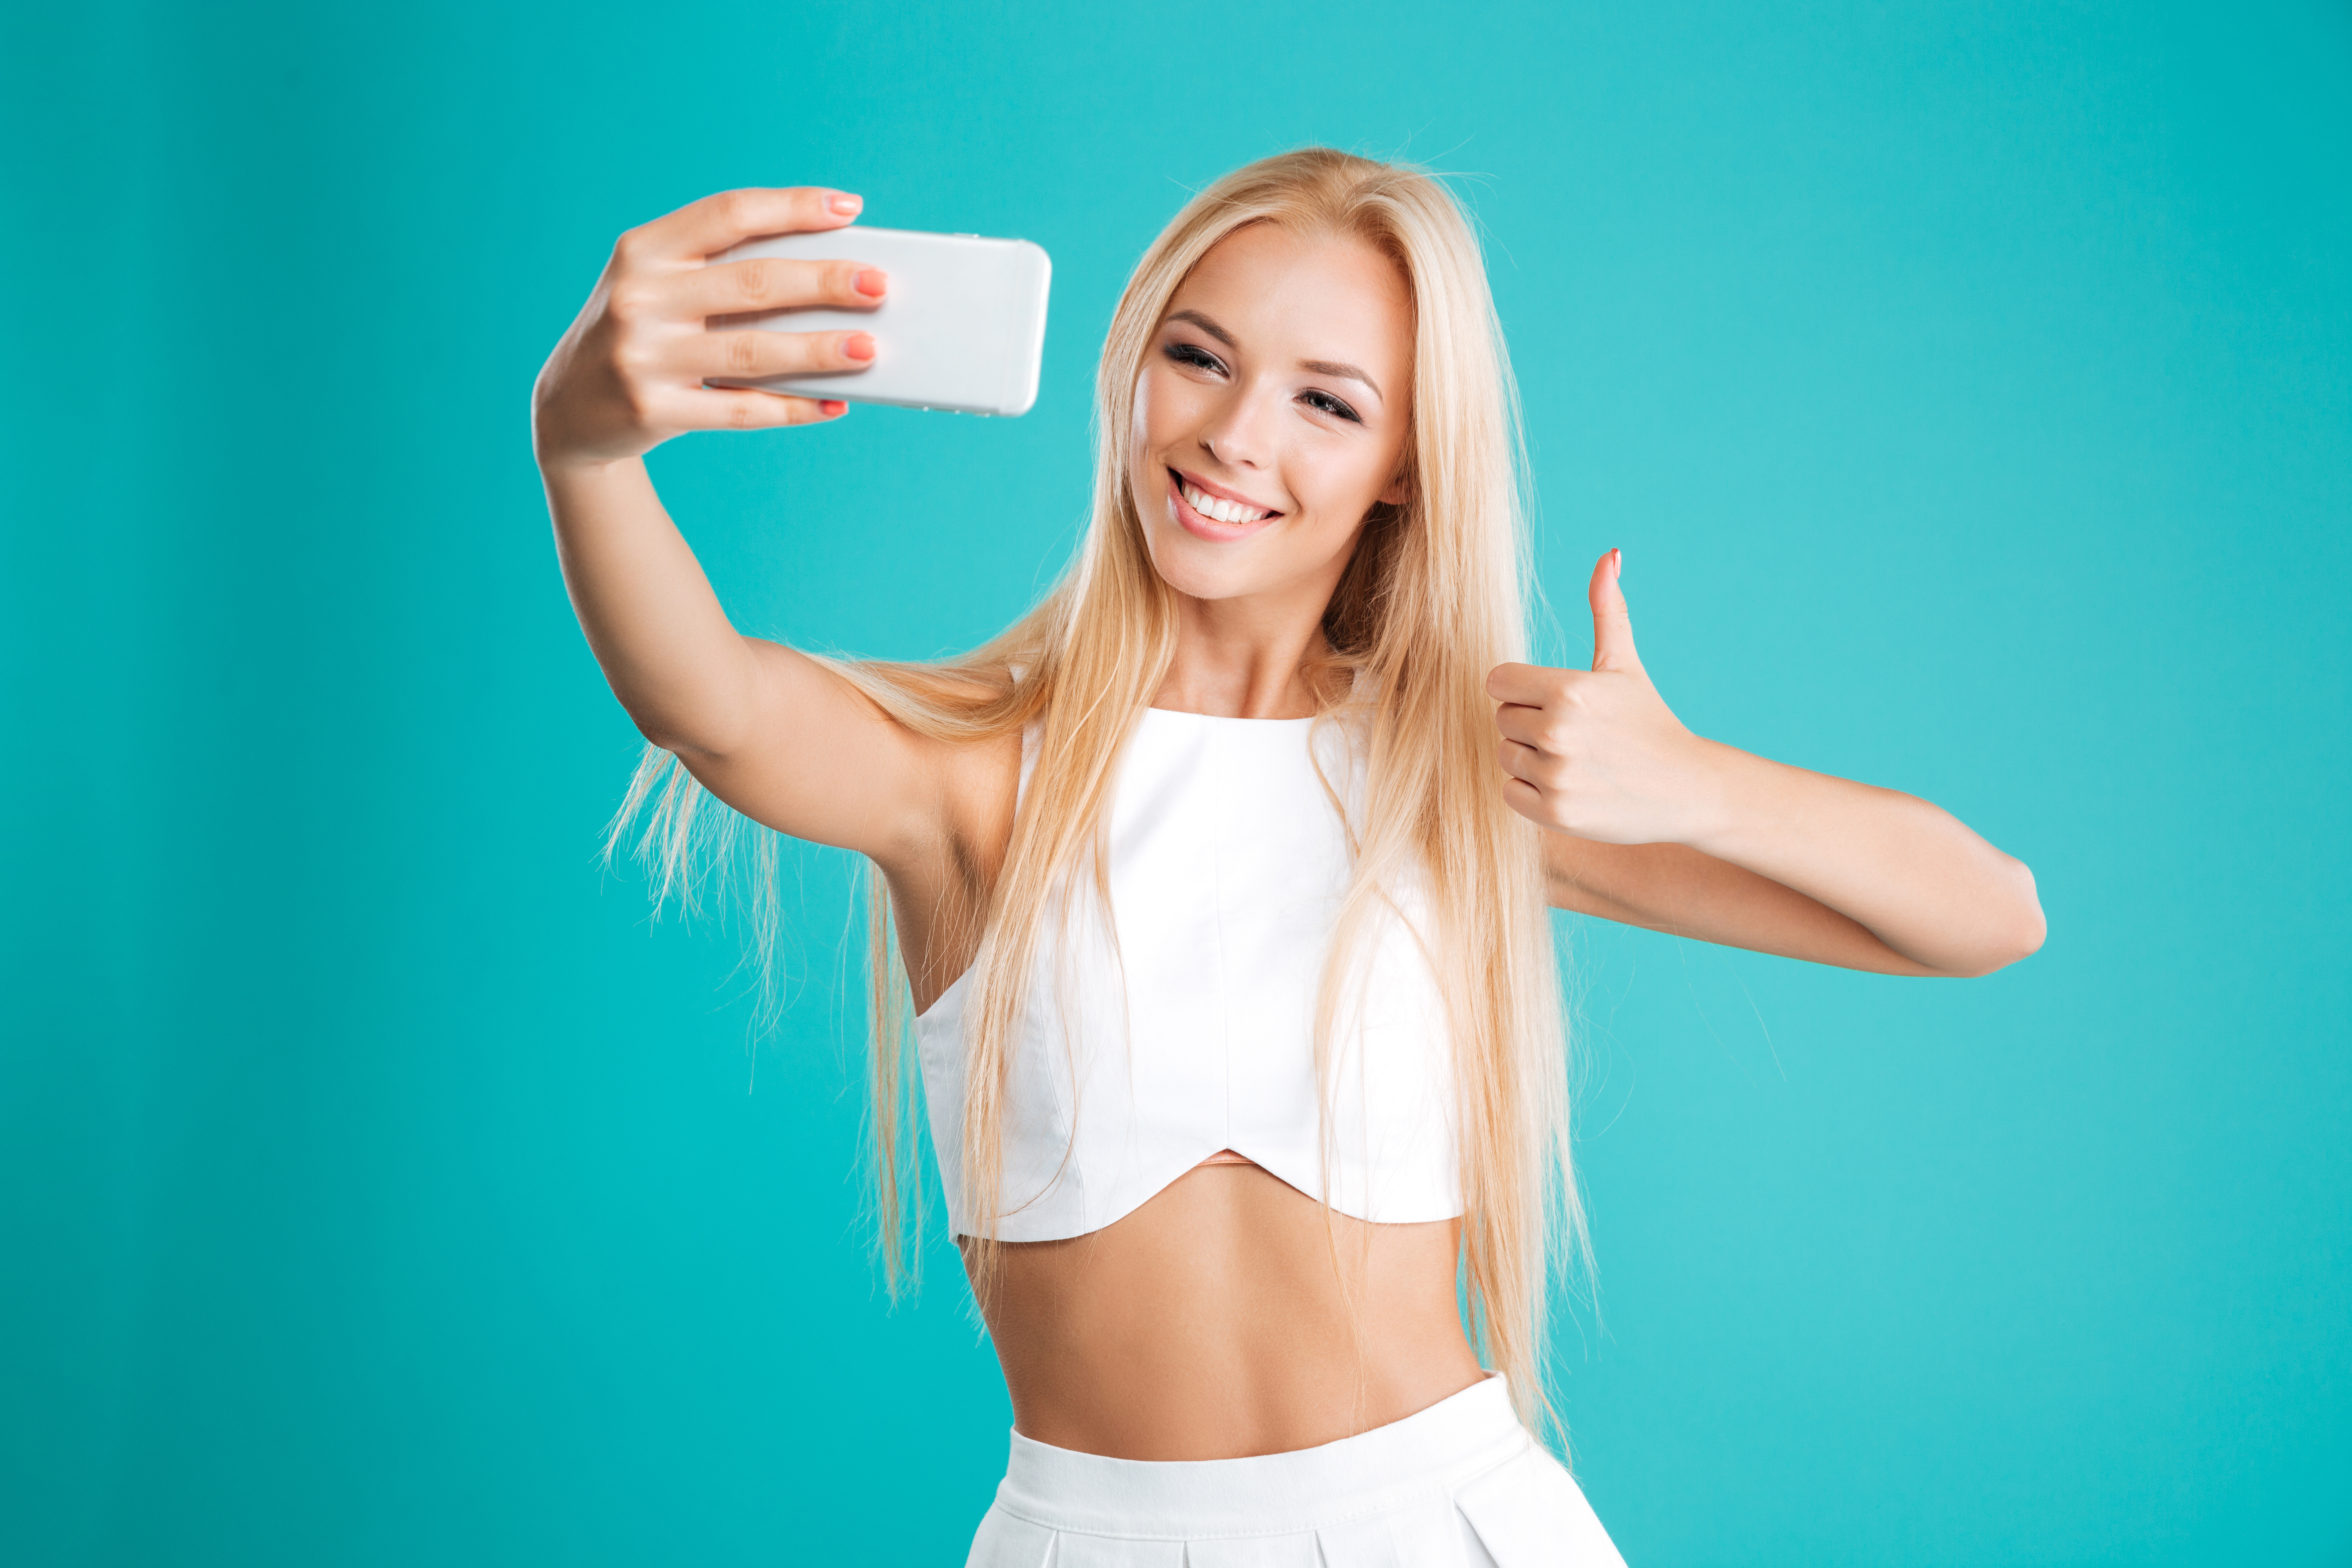 Portrait of a happy smiling girl taking selfie and showing thumb up gesture isolated on the blue background